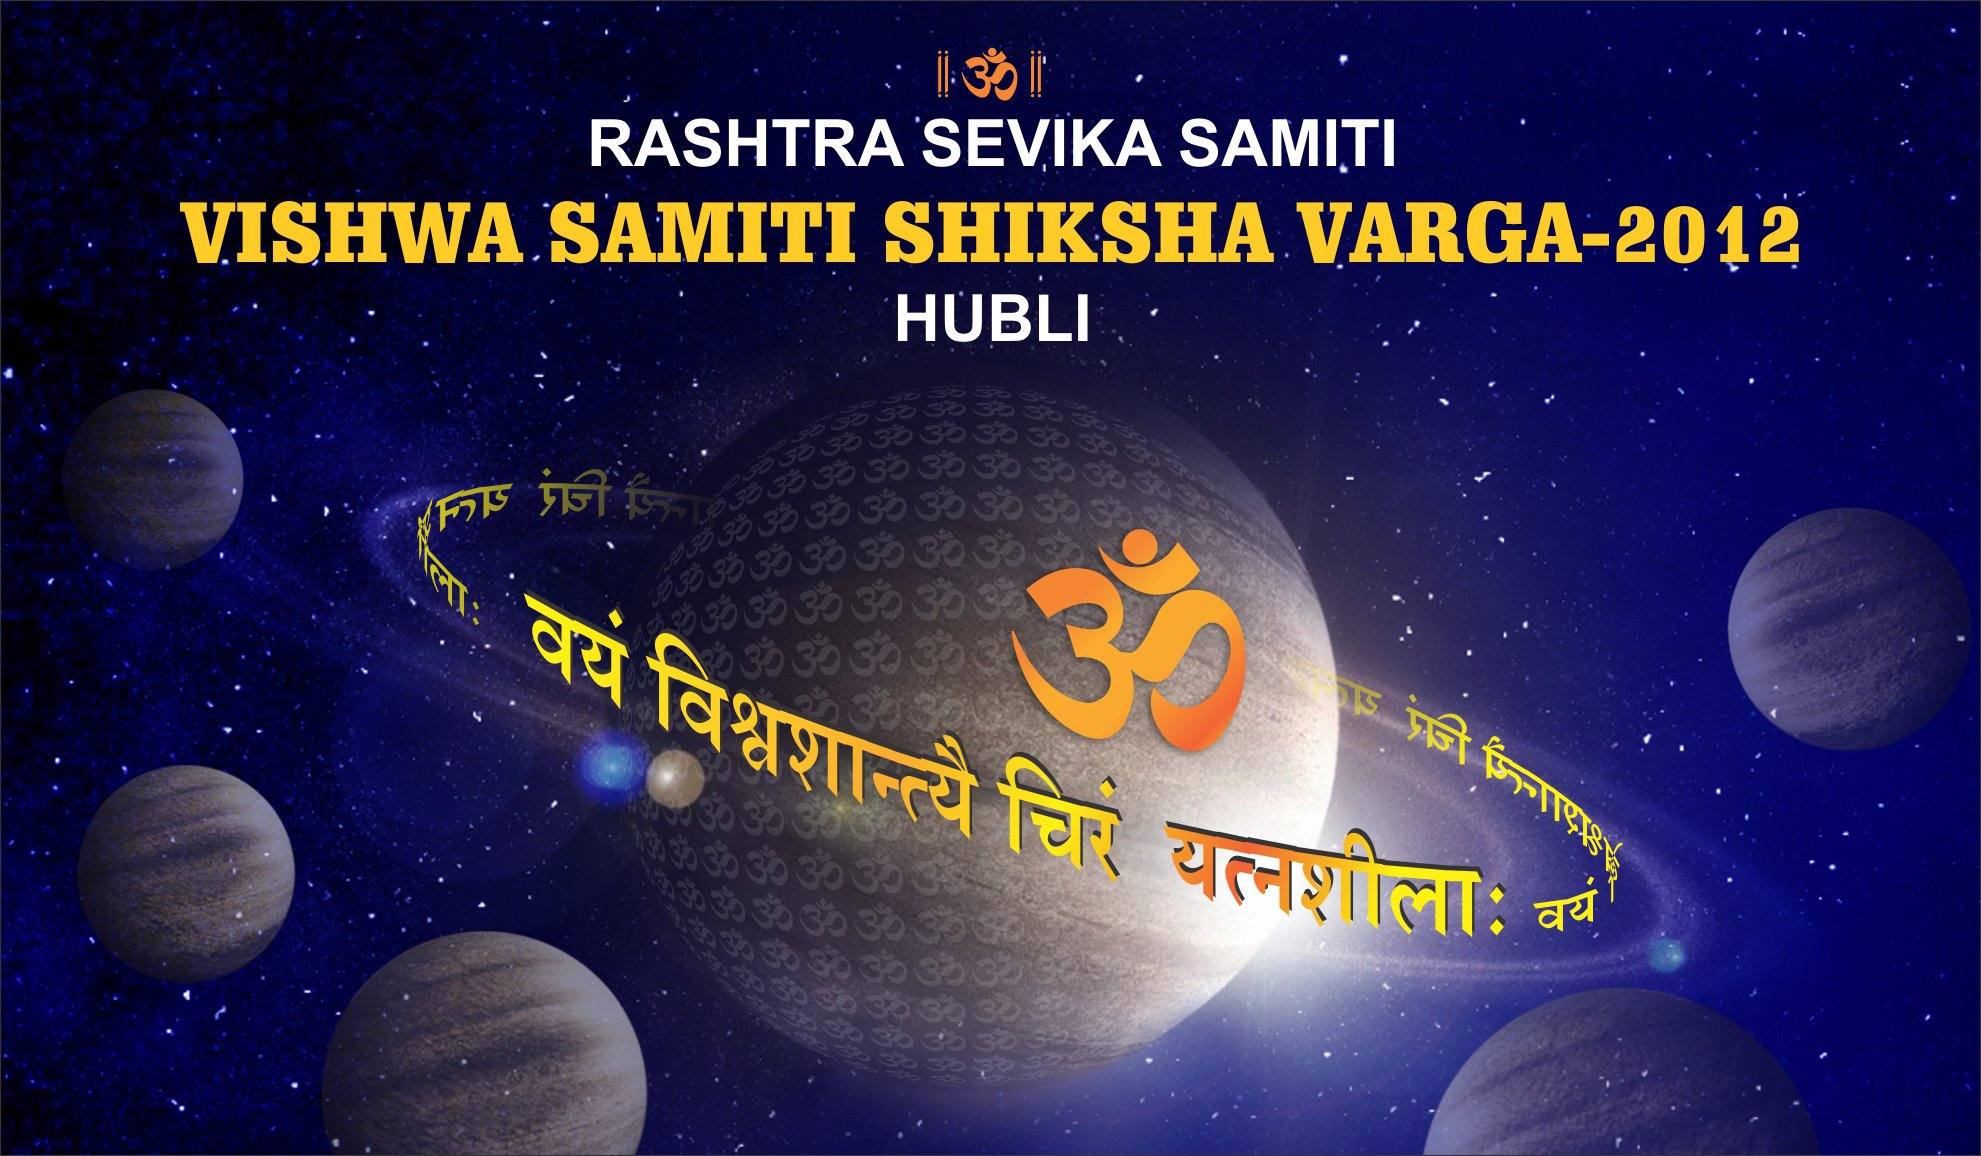 Vishwa Samiti Shiksha Varg-2012 to begin from July 22 at Hubli-Karnataka